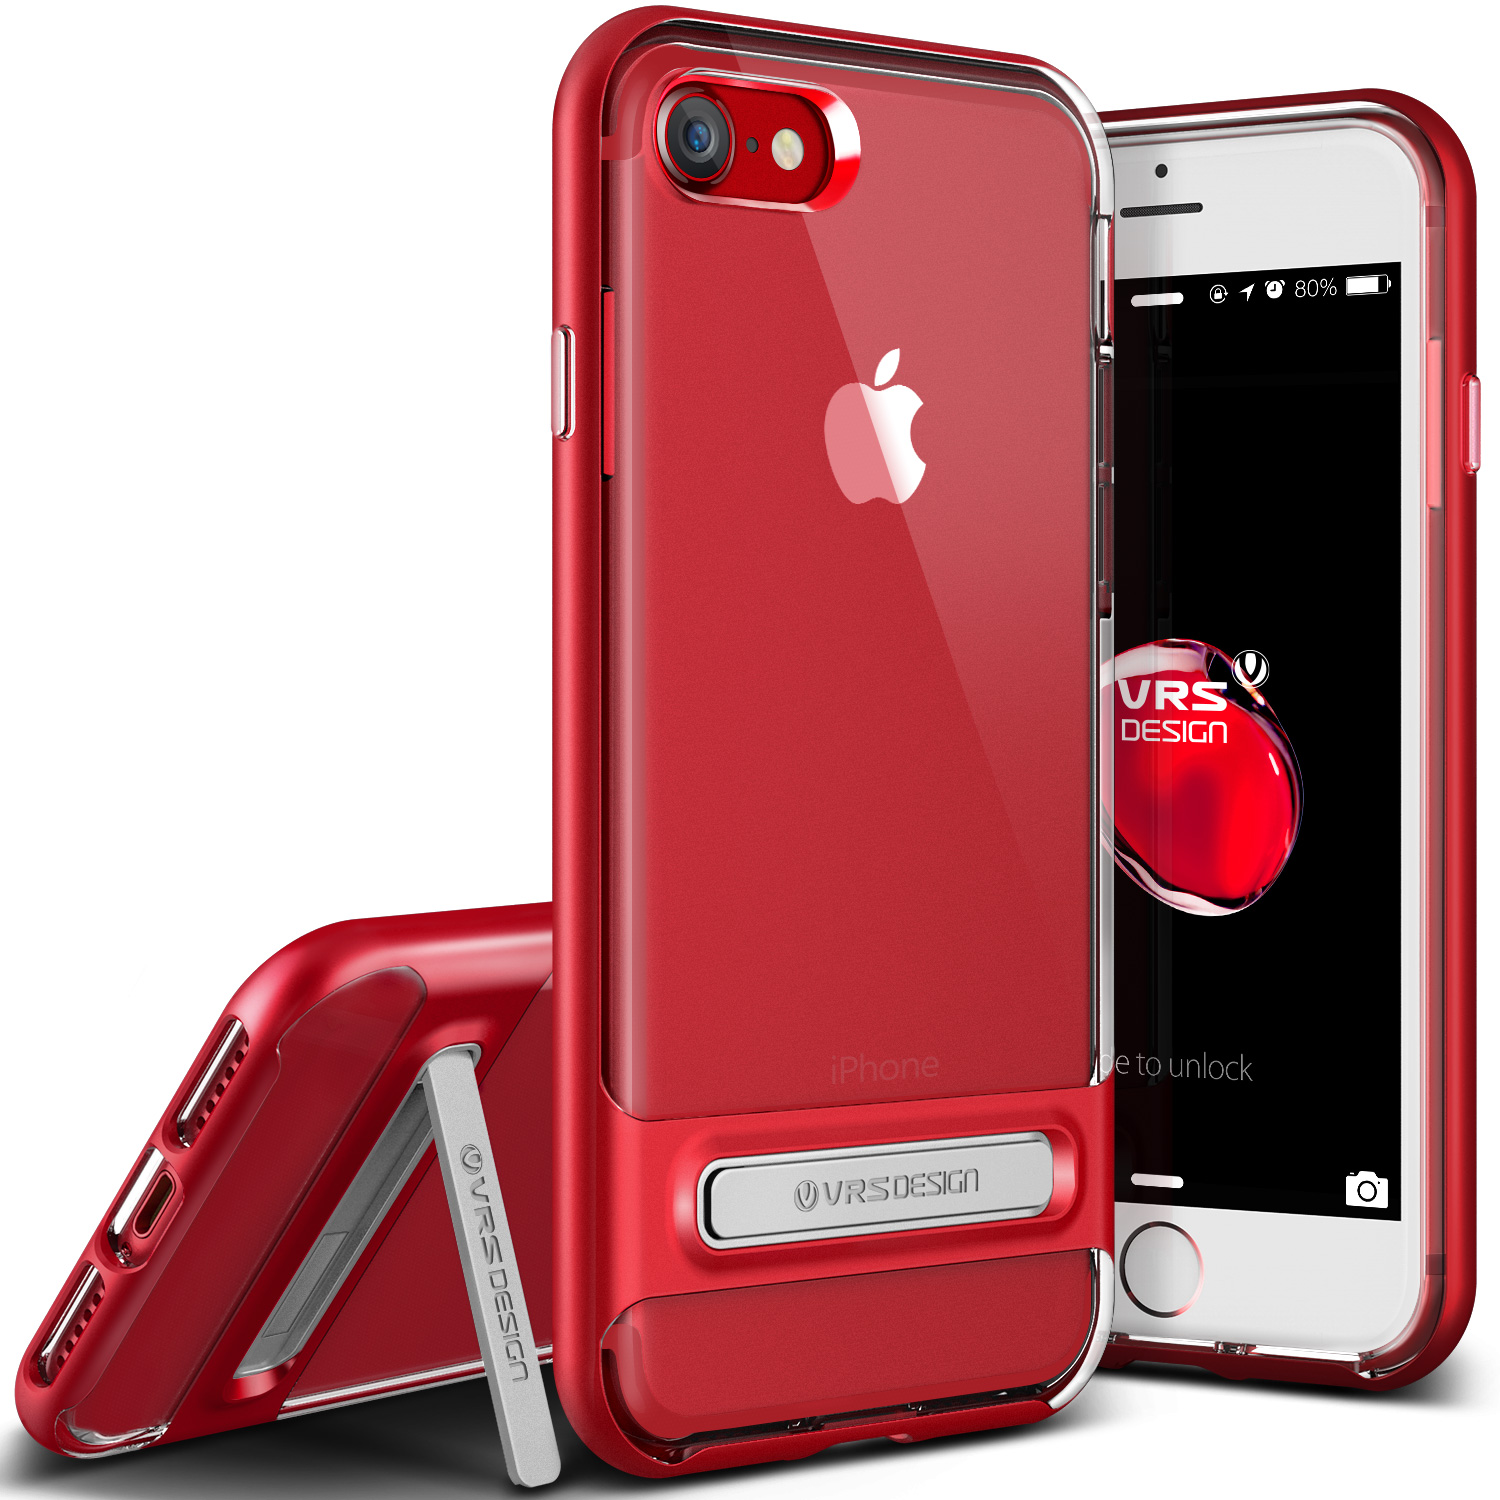 iPhone 7 Case, VRS Design [Crystal Bumper] Clear Slim TPU Cover with Rugged Protection - Red